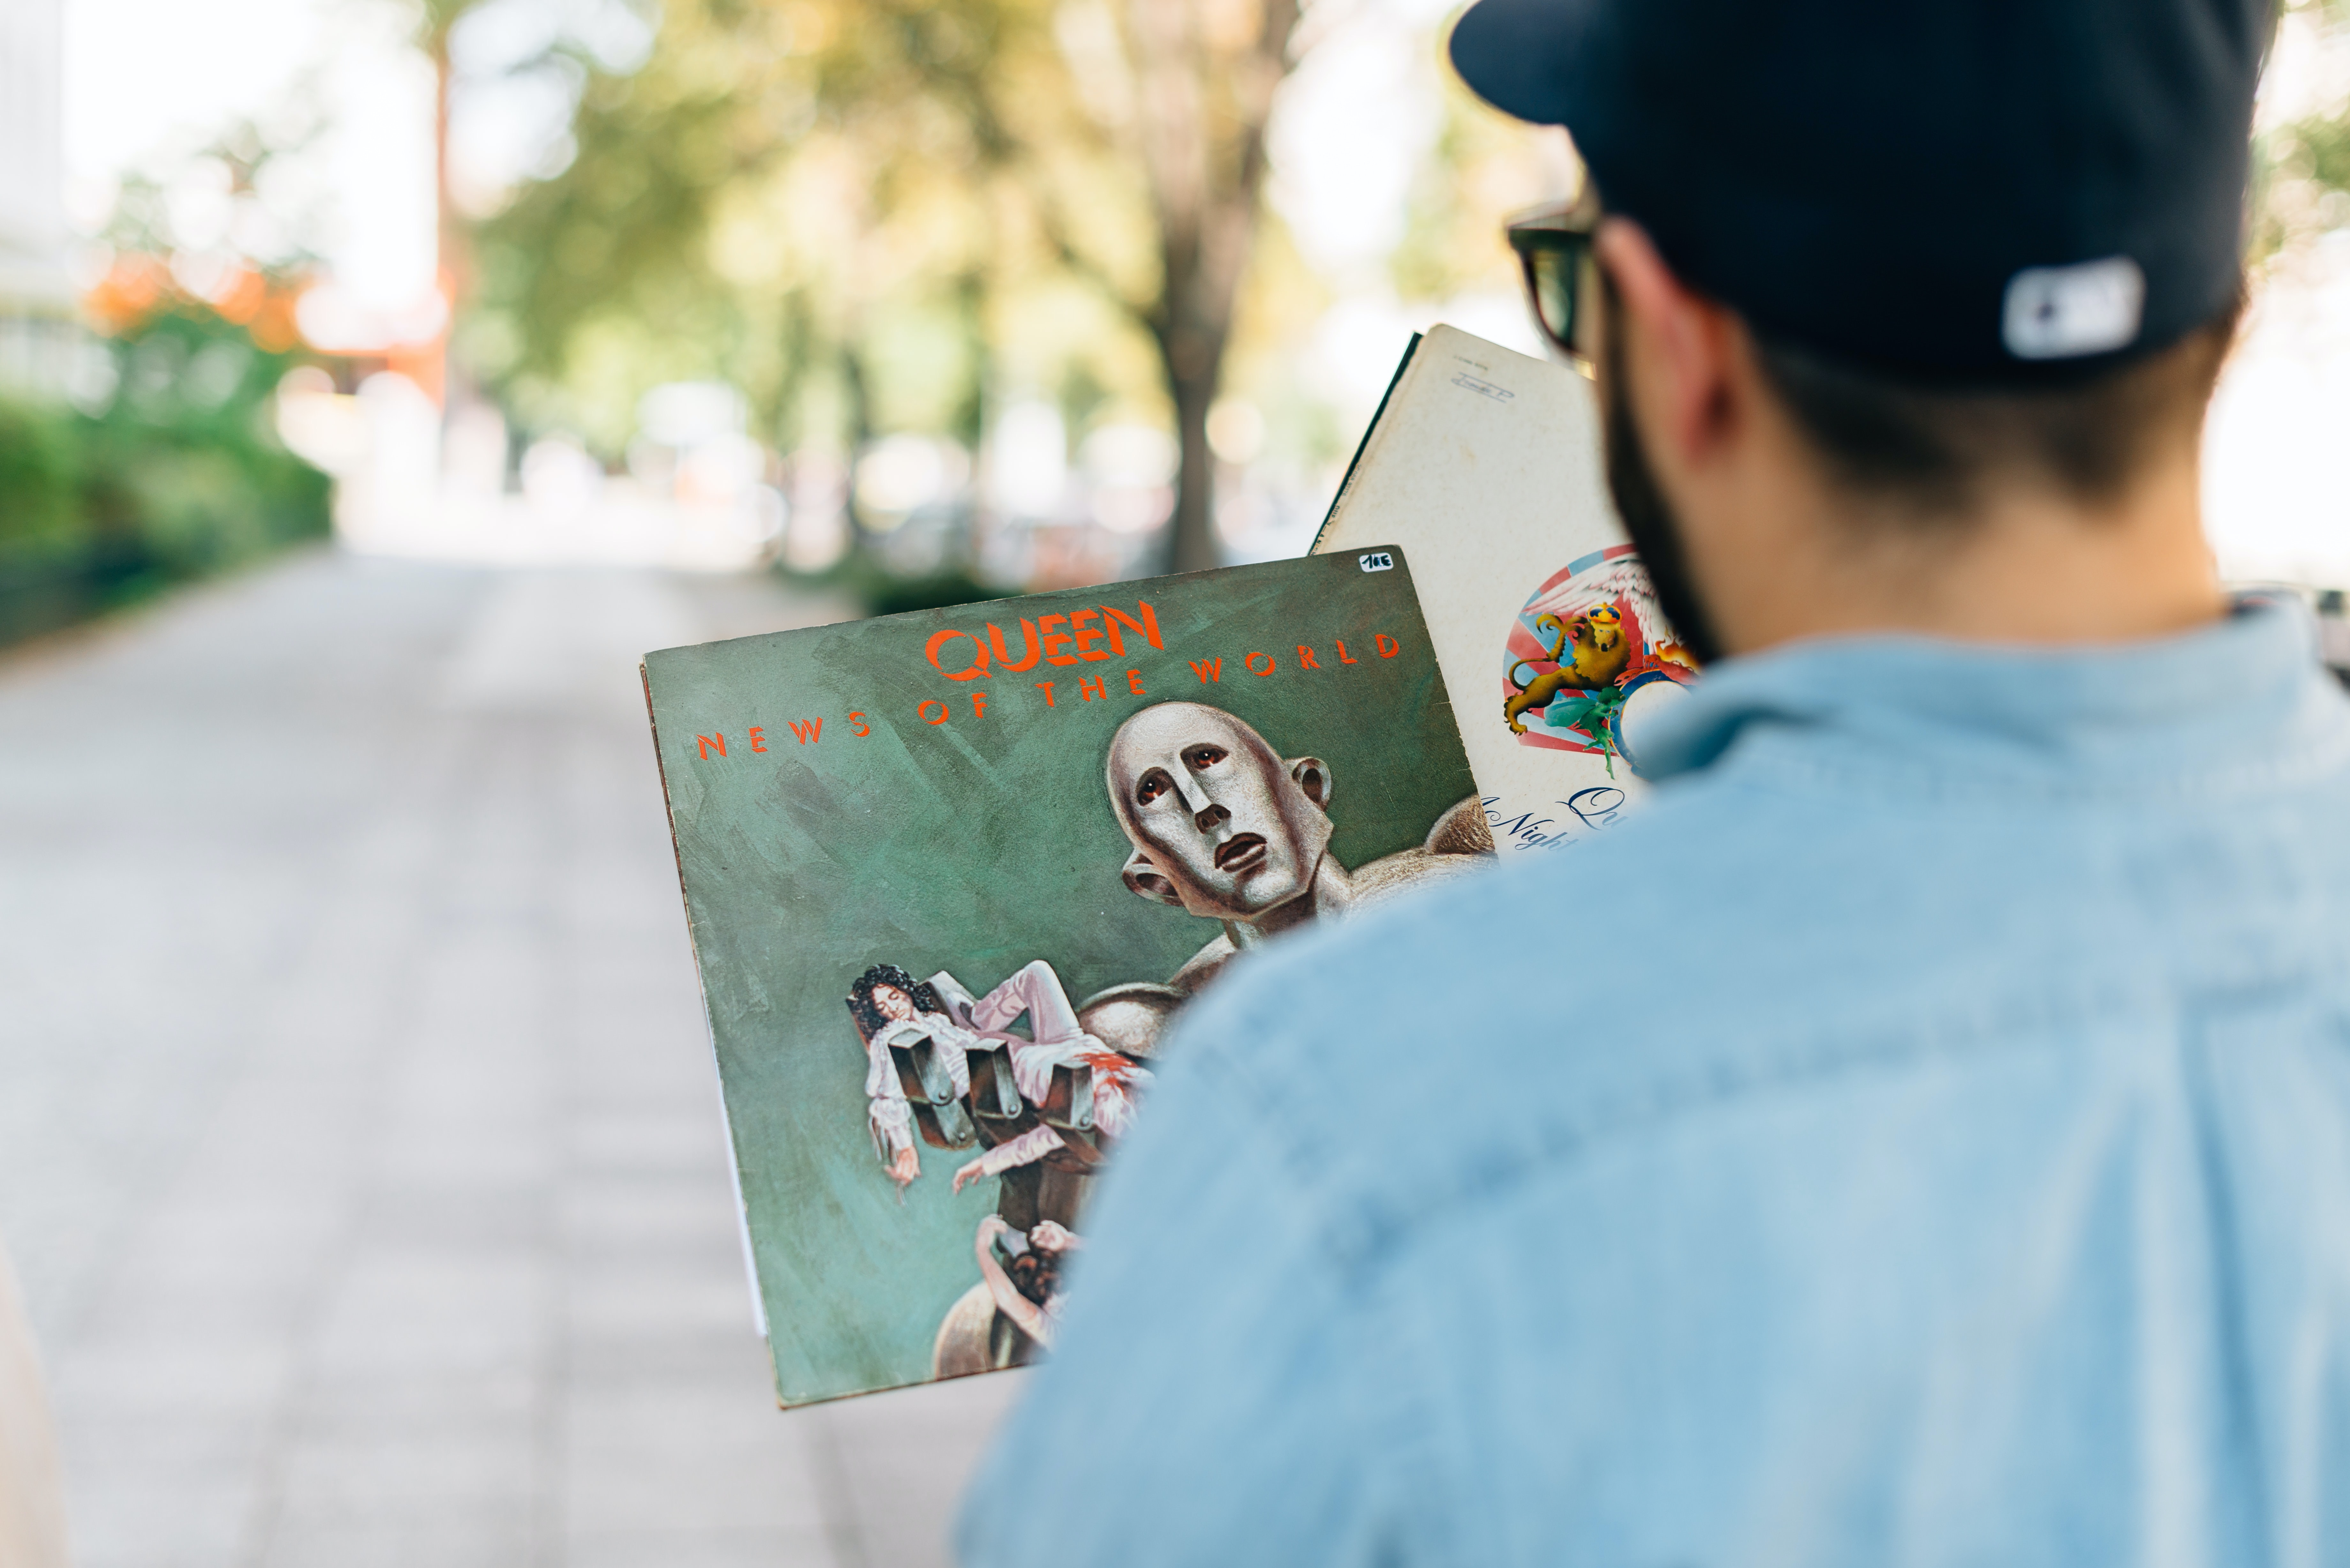 man holding vinyl album in shallow focus photography